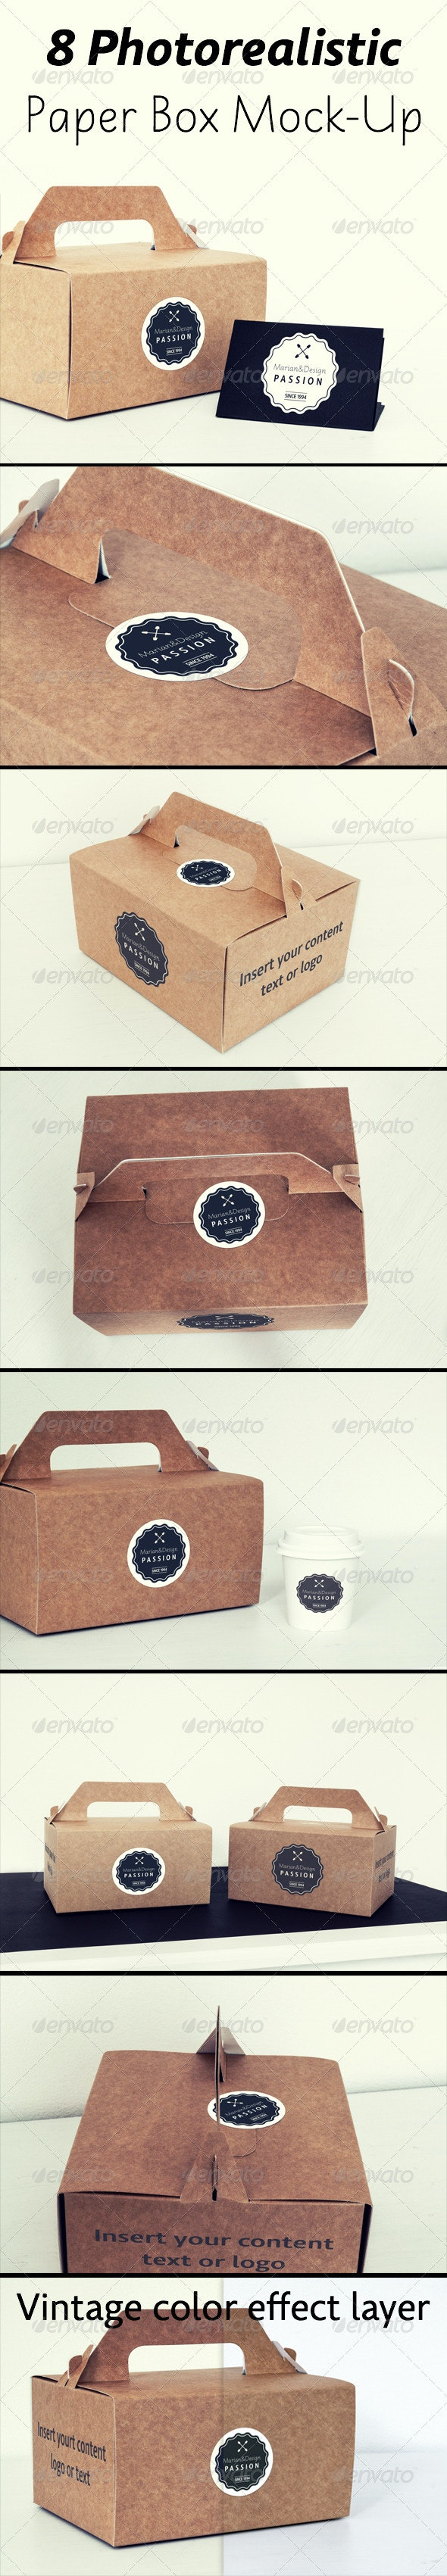 8 Photorealistic Paper Box & Logo Mock-Up - Logo Product Mock-Ups